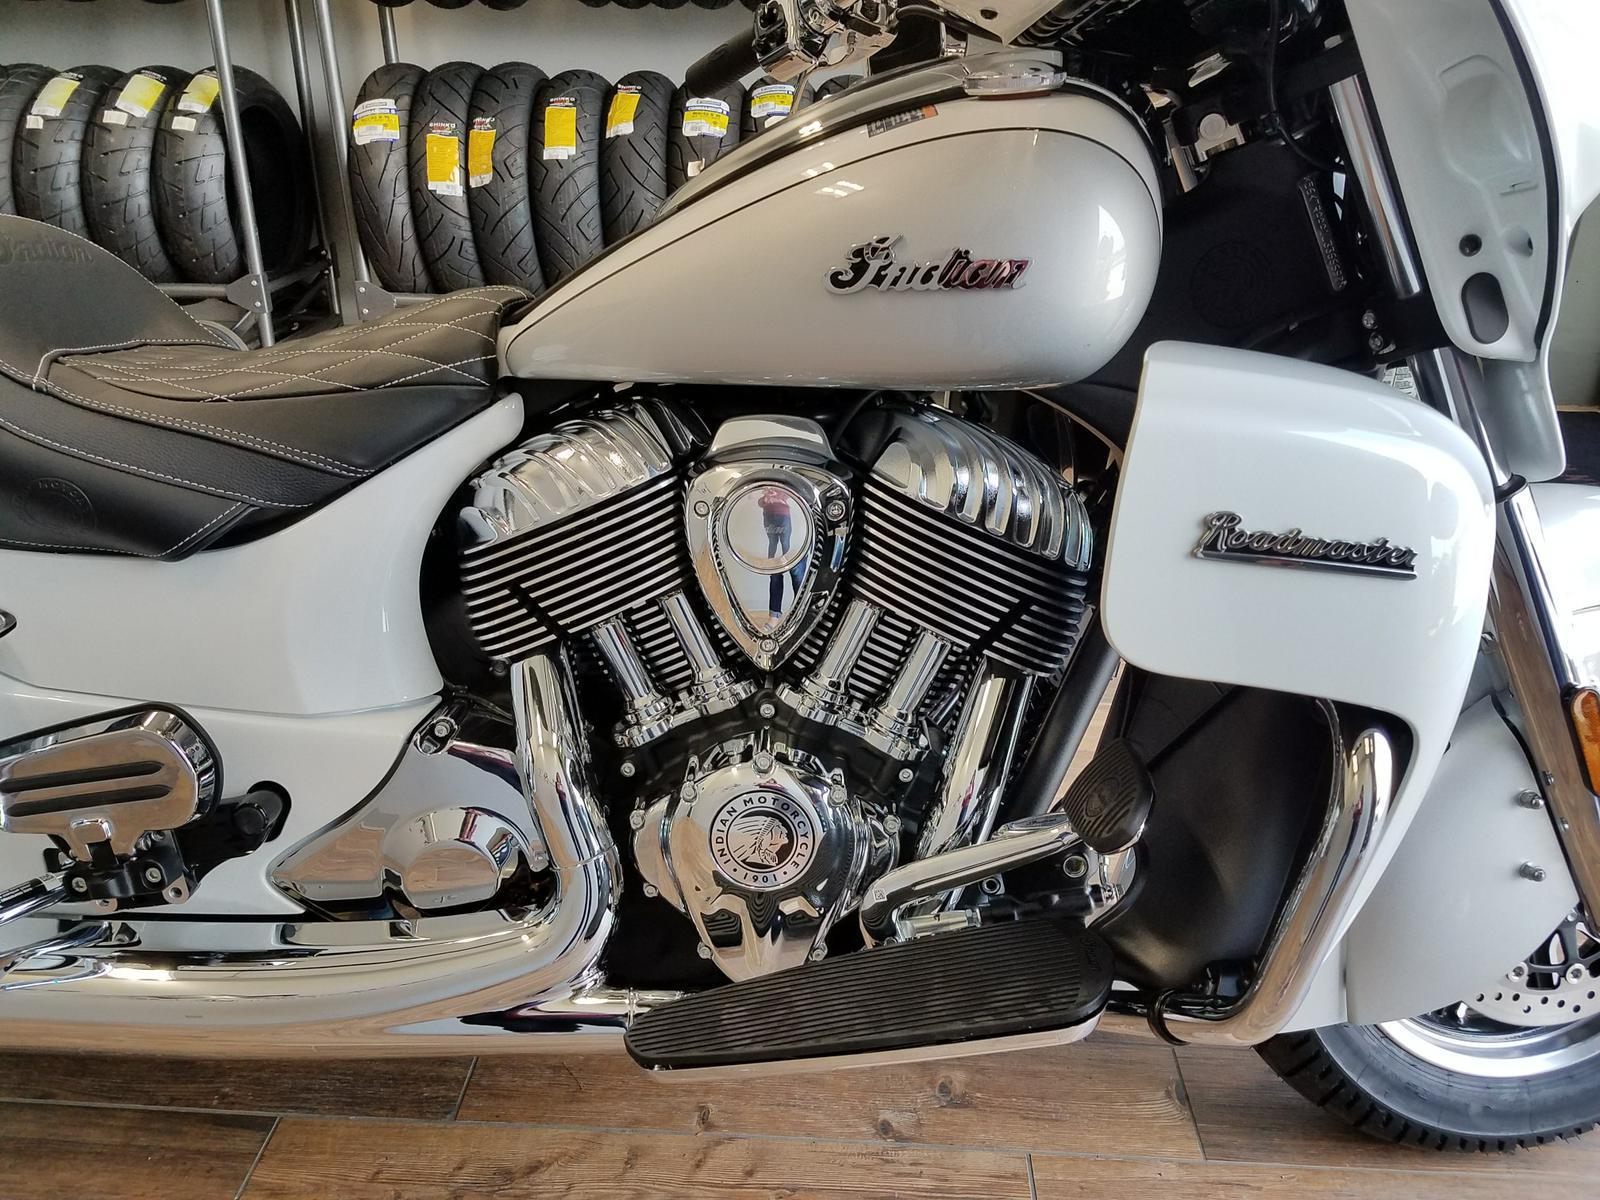 2018 Indian Motorcycle Roadmaster Prl White Silver 49st For Sale 89 Honda Elite Wiring Previous